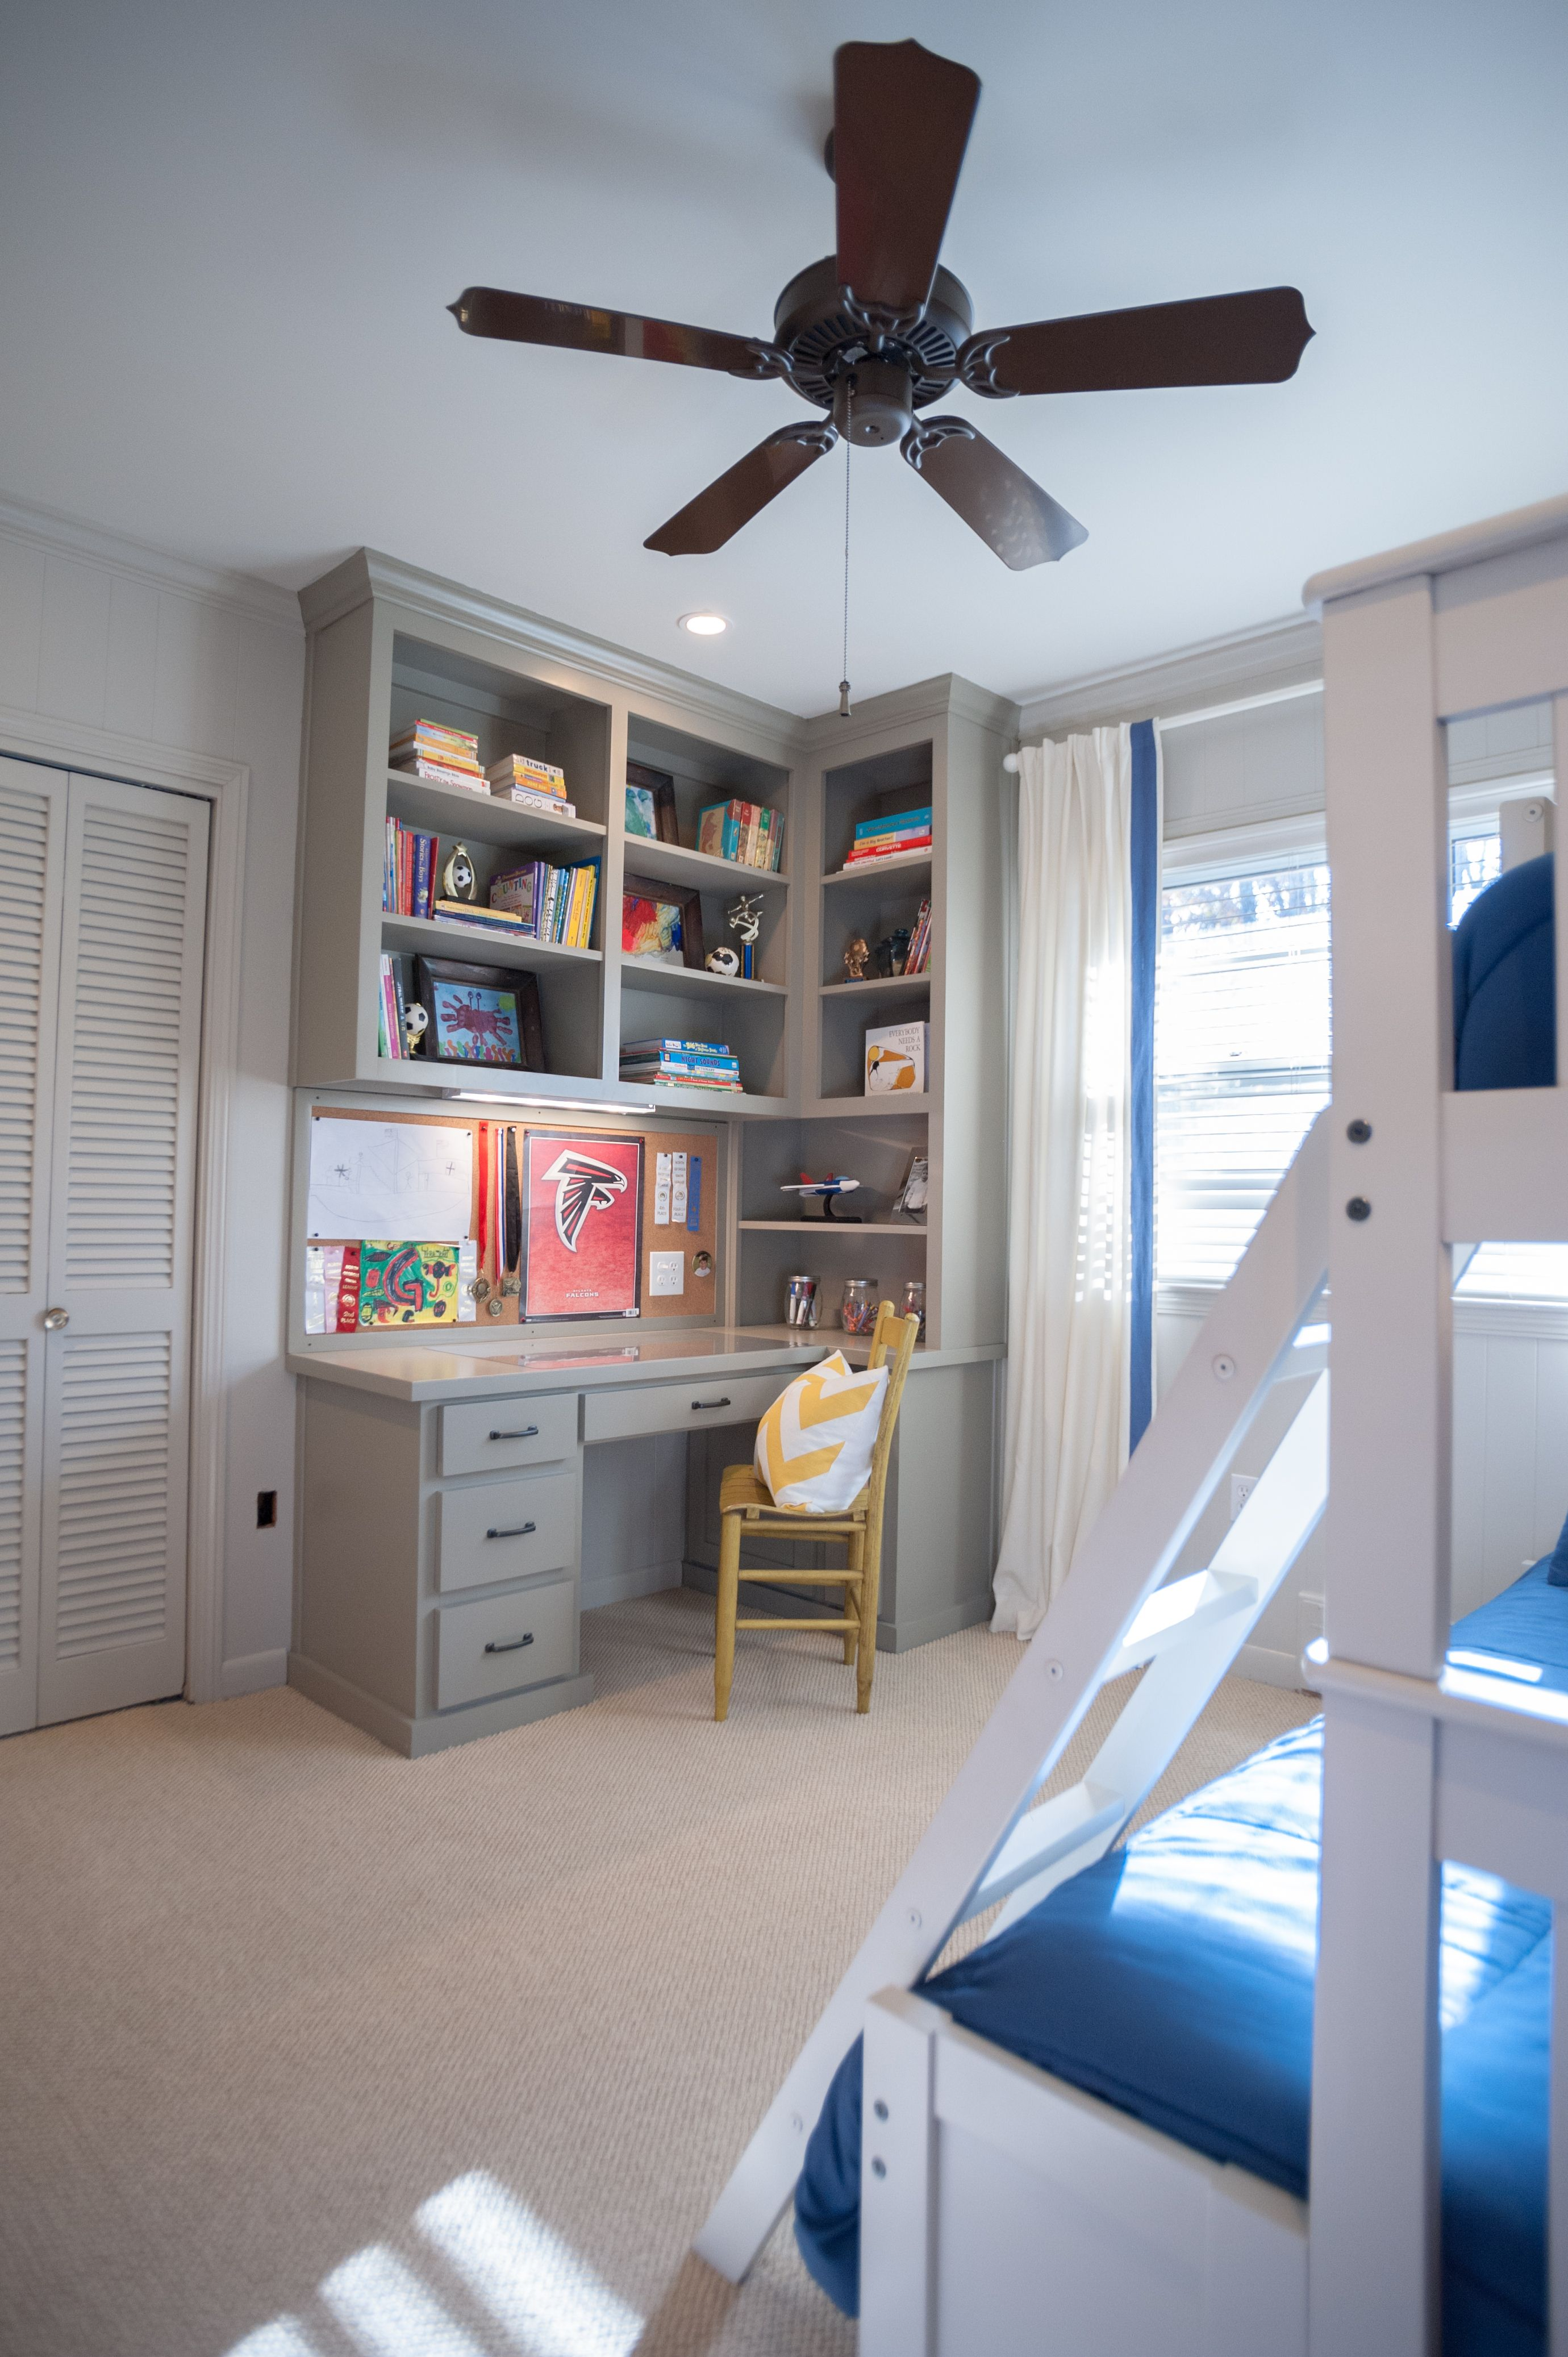 Idea For My Desk Only I Need More Bookshelves And A Drafting Table Made With Pine Wood Not Painted Very General